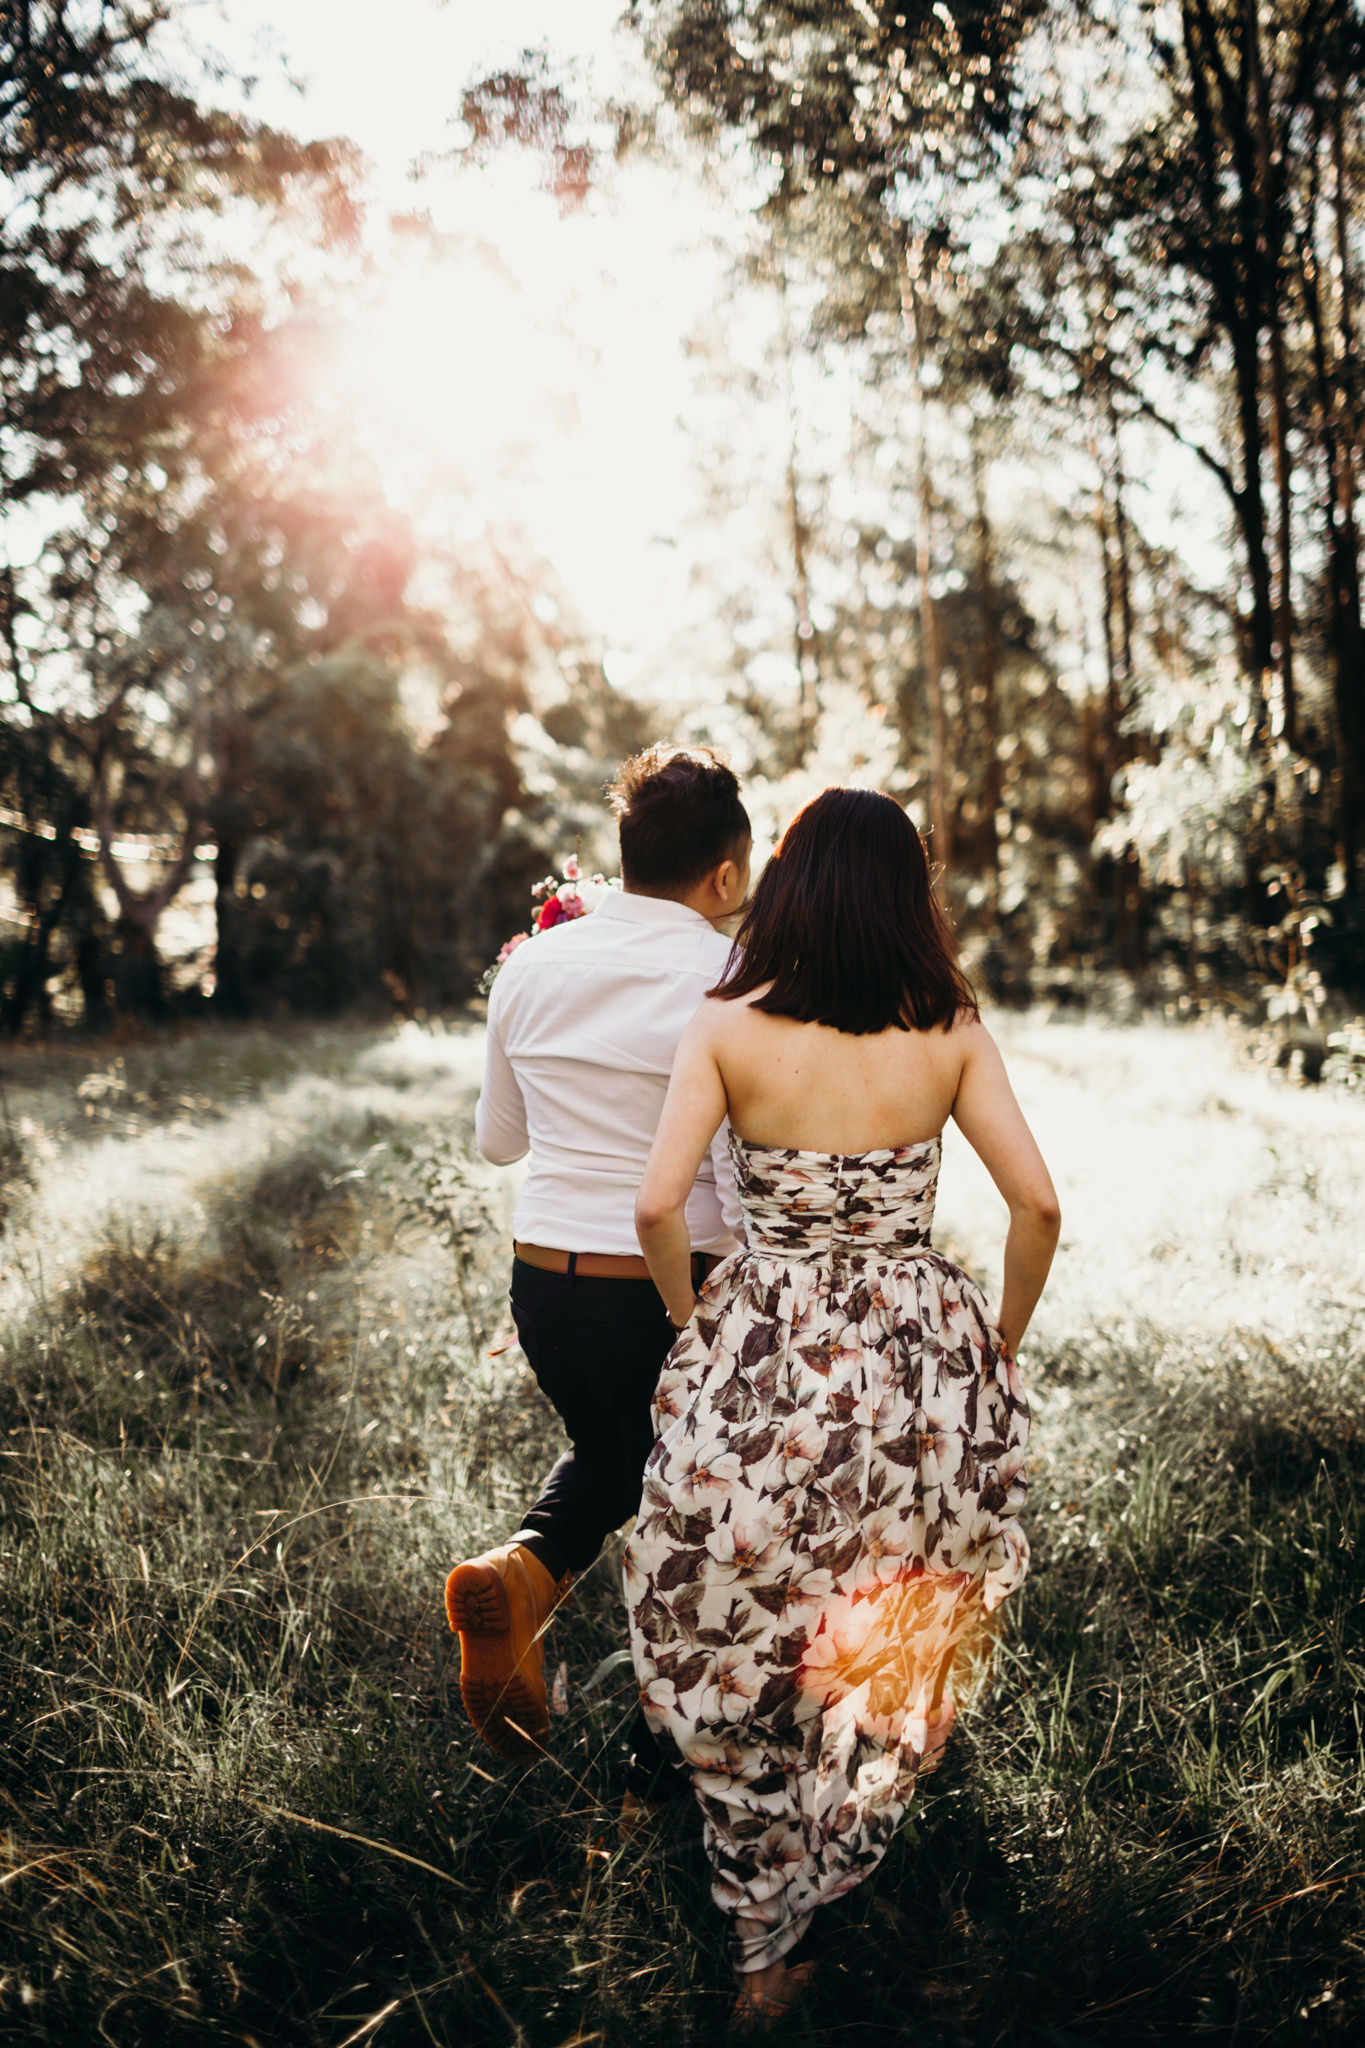 Fox & Kin Destination Wedding Photographer Intimate Elopement Sydney Byron Coffs Harbour Photography Nicola Bodle